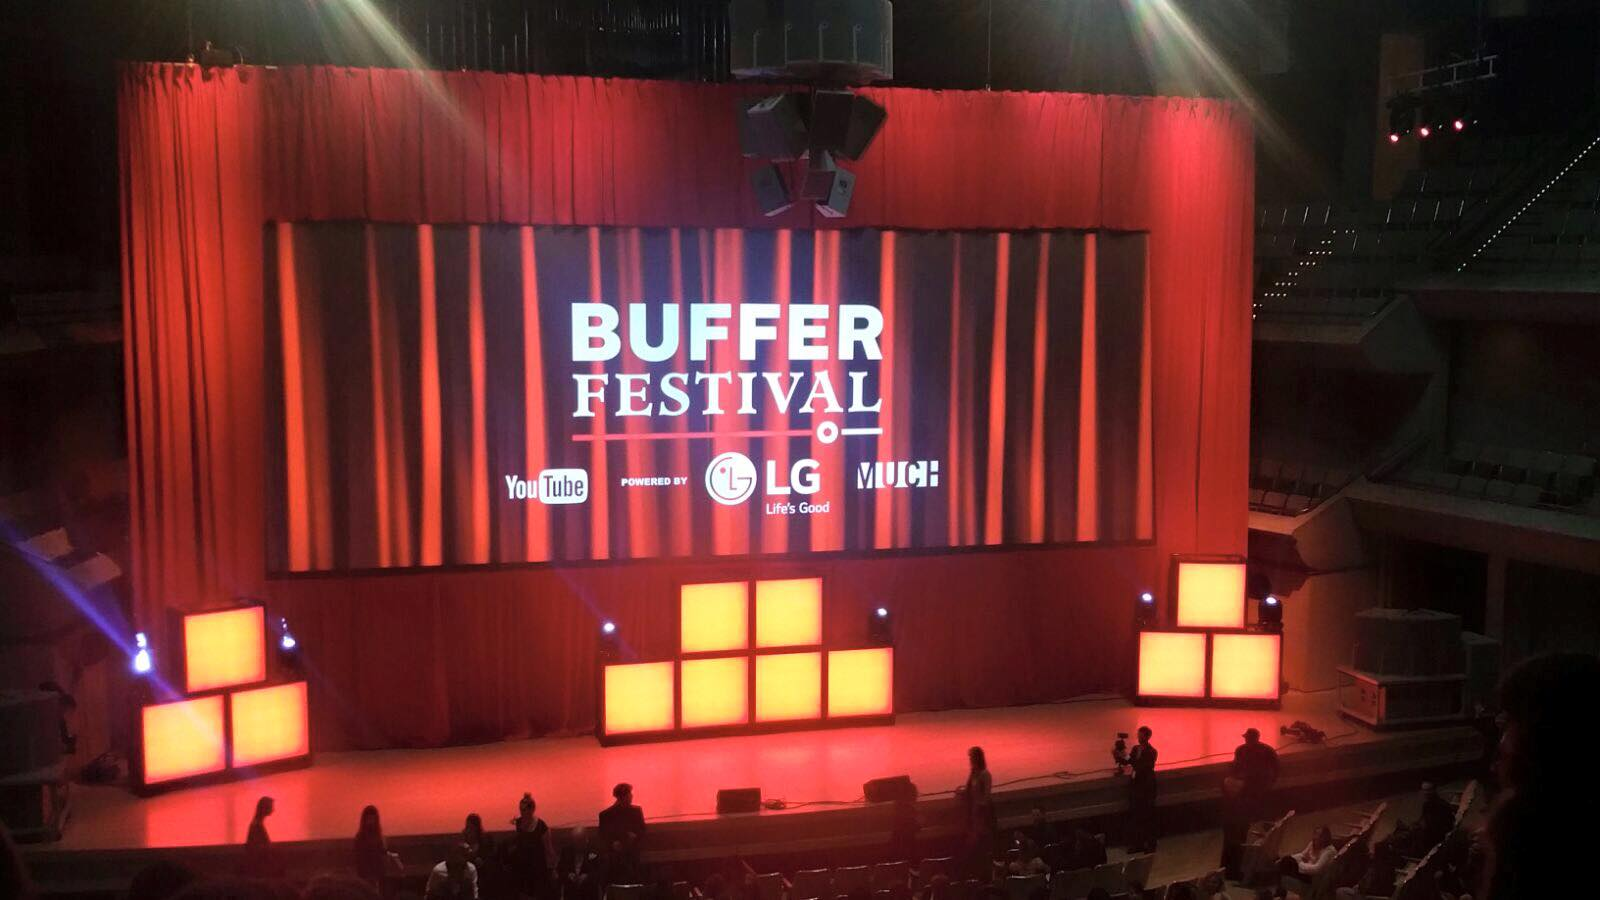 Annual Buffer Festival Youtube Content